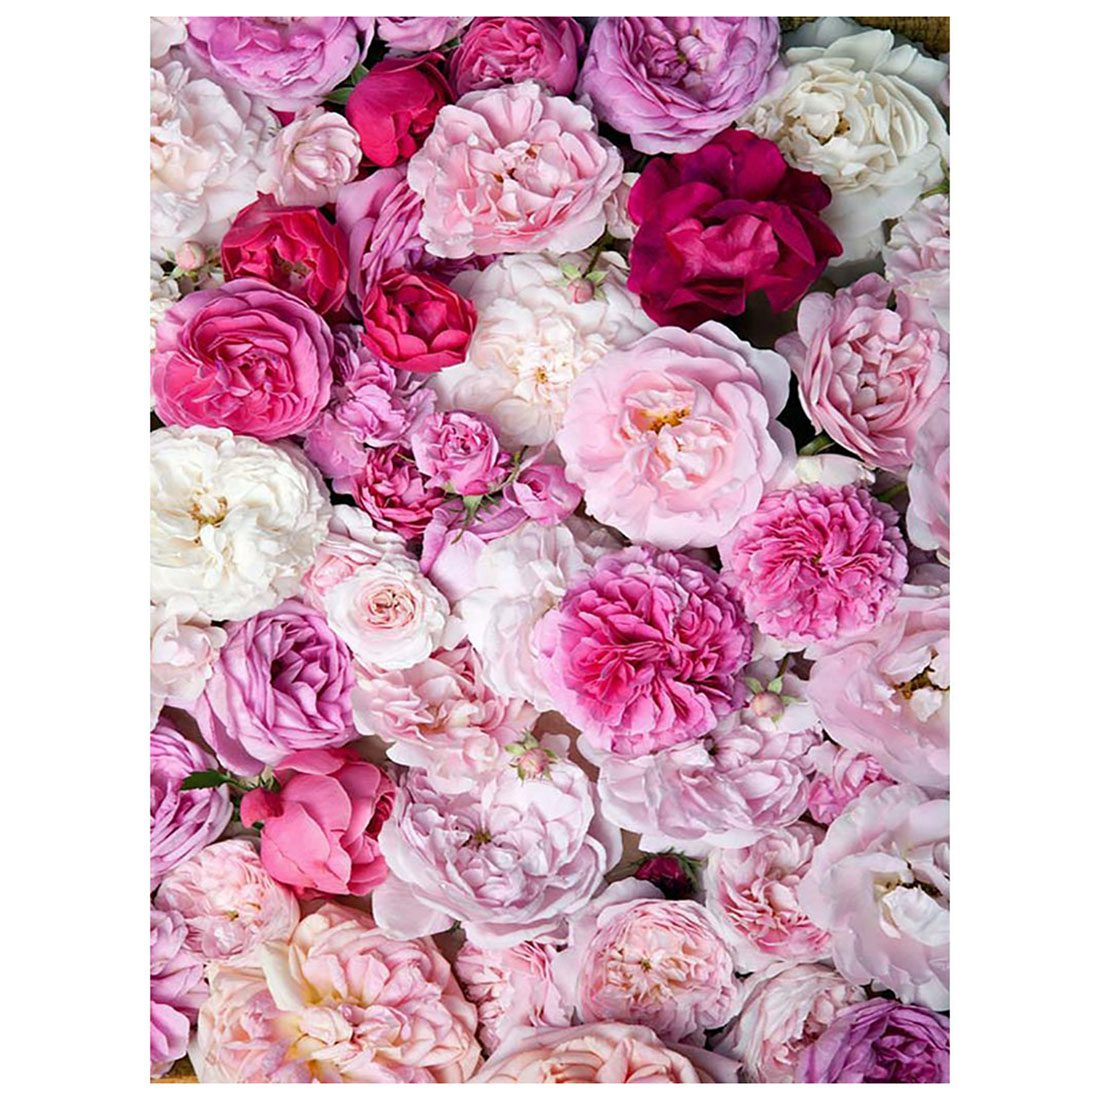 Top Deals 5x7ft Photography Backdrop Flower wall Pink White Valentine's Day baby shower children background photo studio photo image